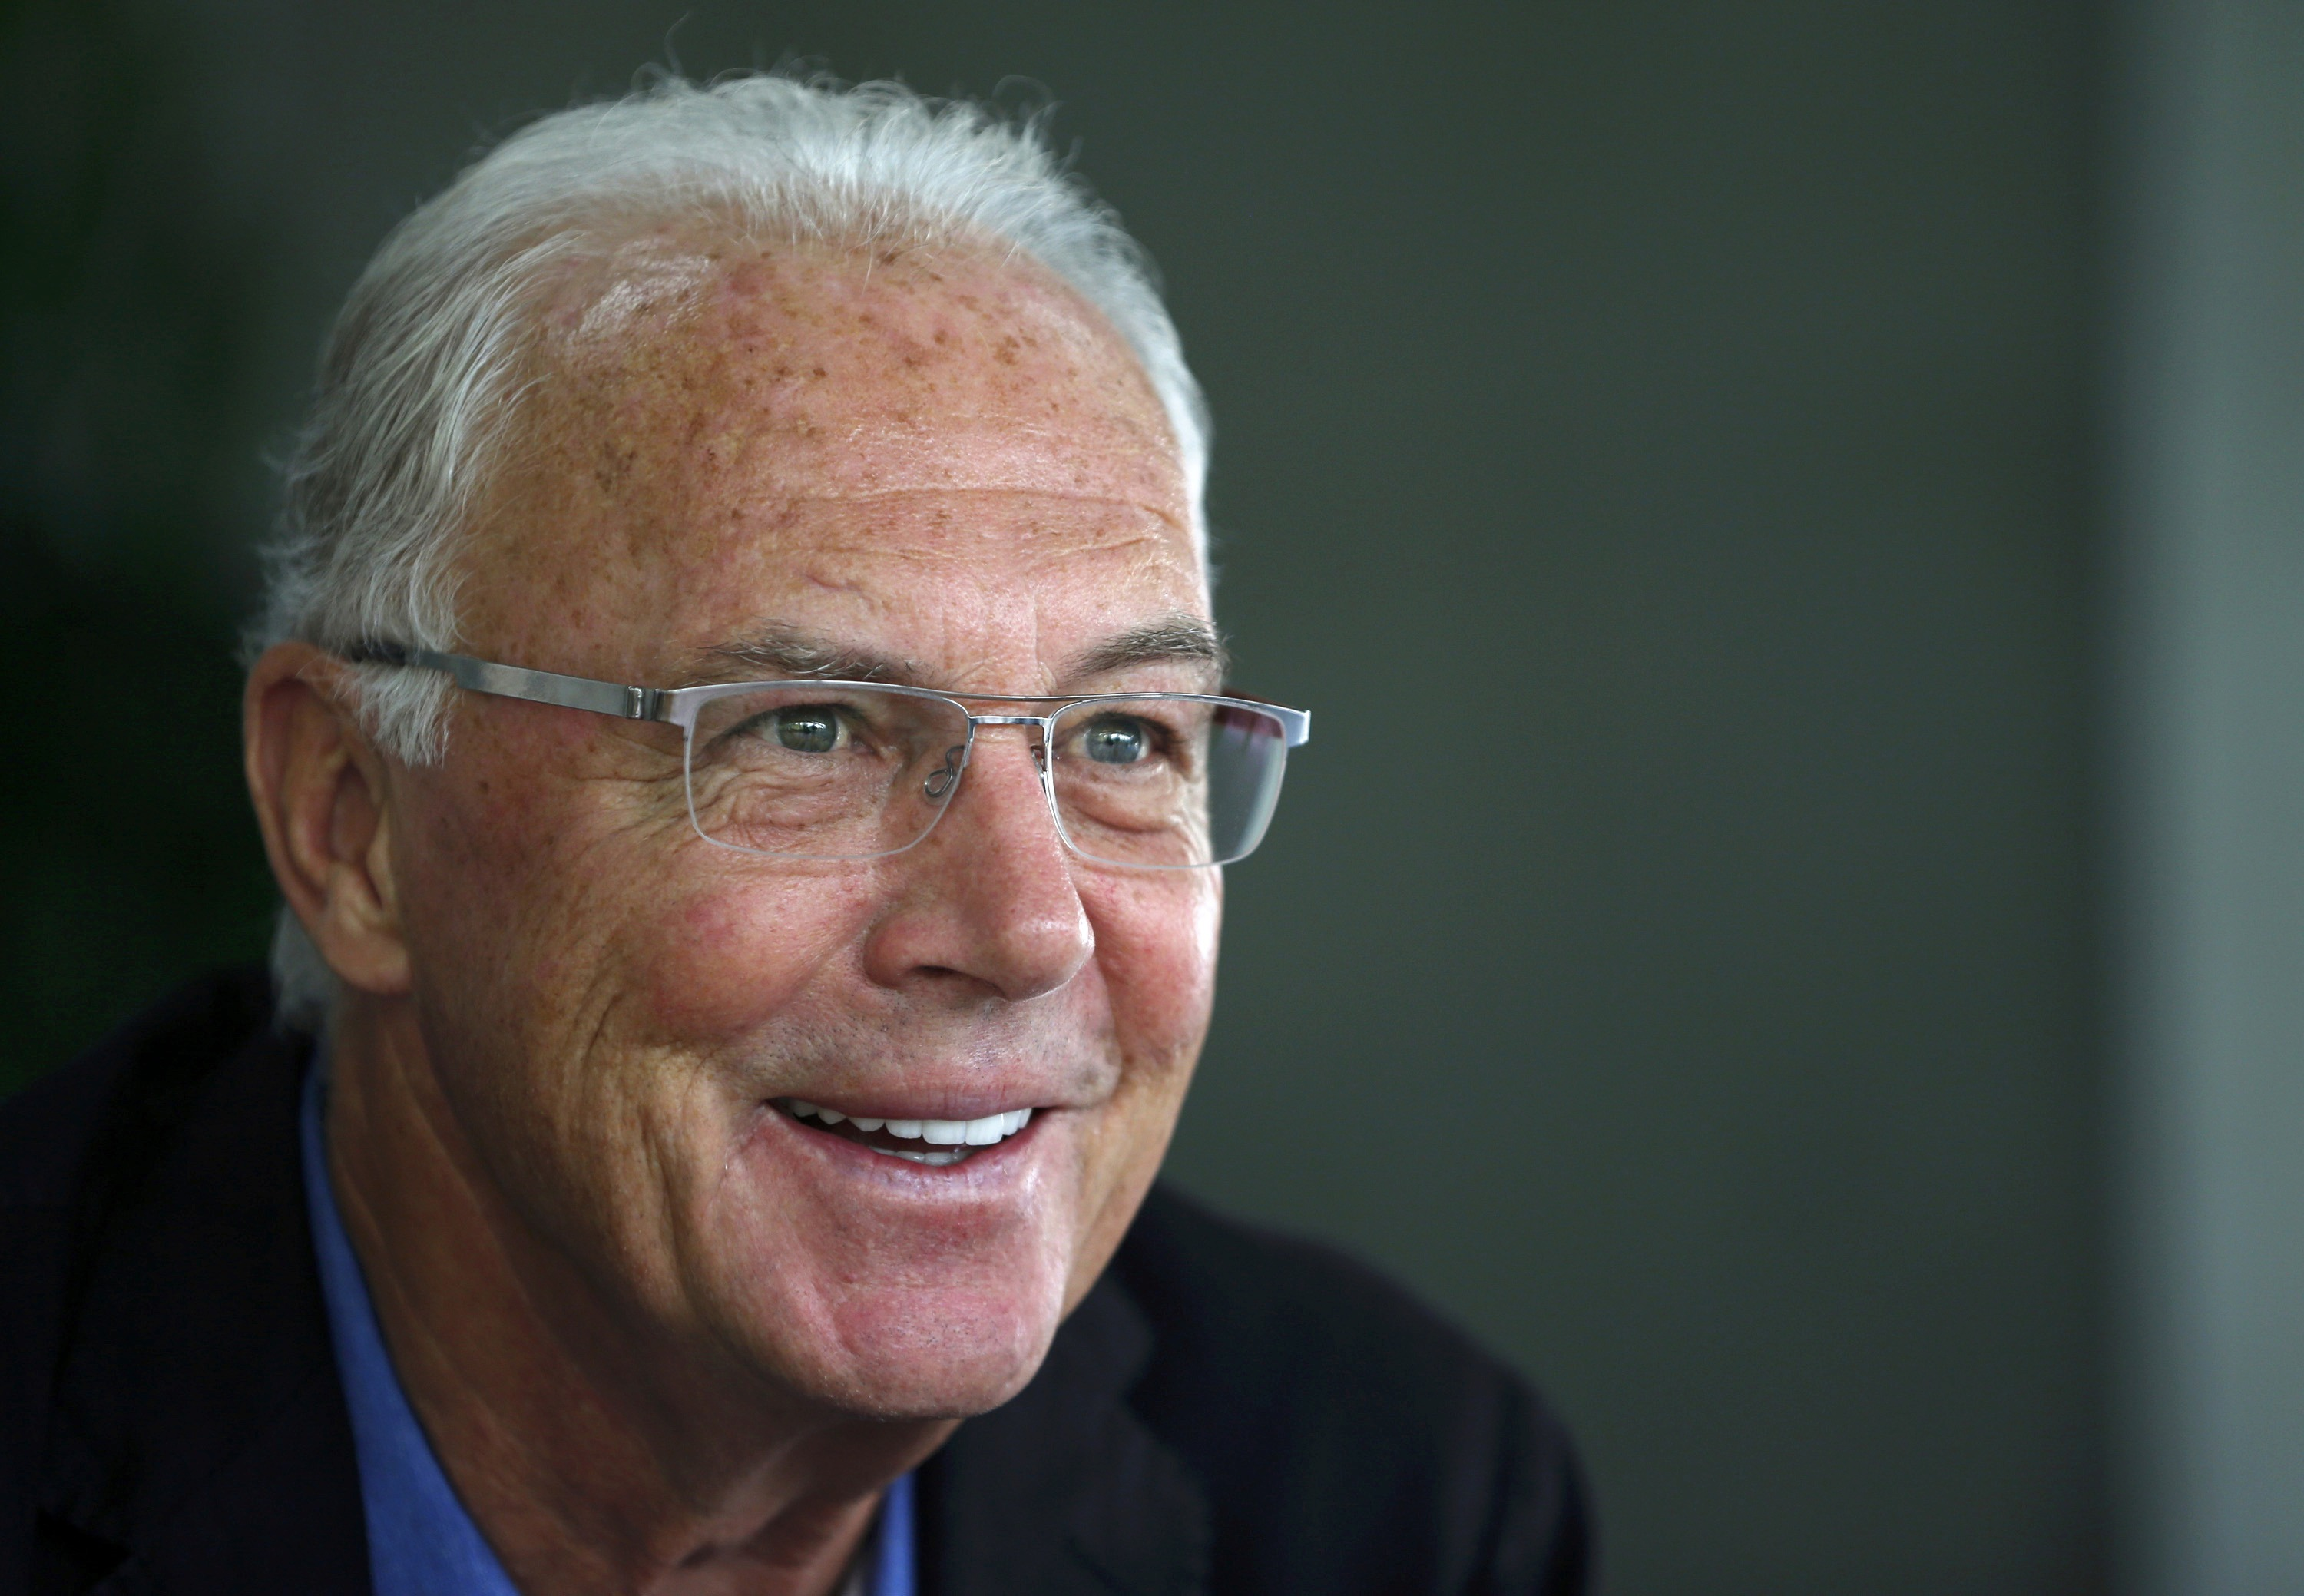 File photo of former FIFA executive committee member Franz Beckenbauer speaking to the media during a news conference in Seoul June 3, 2013. Photo: Reuters